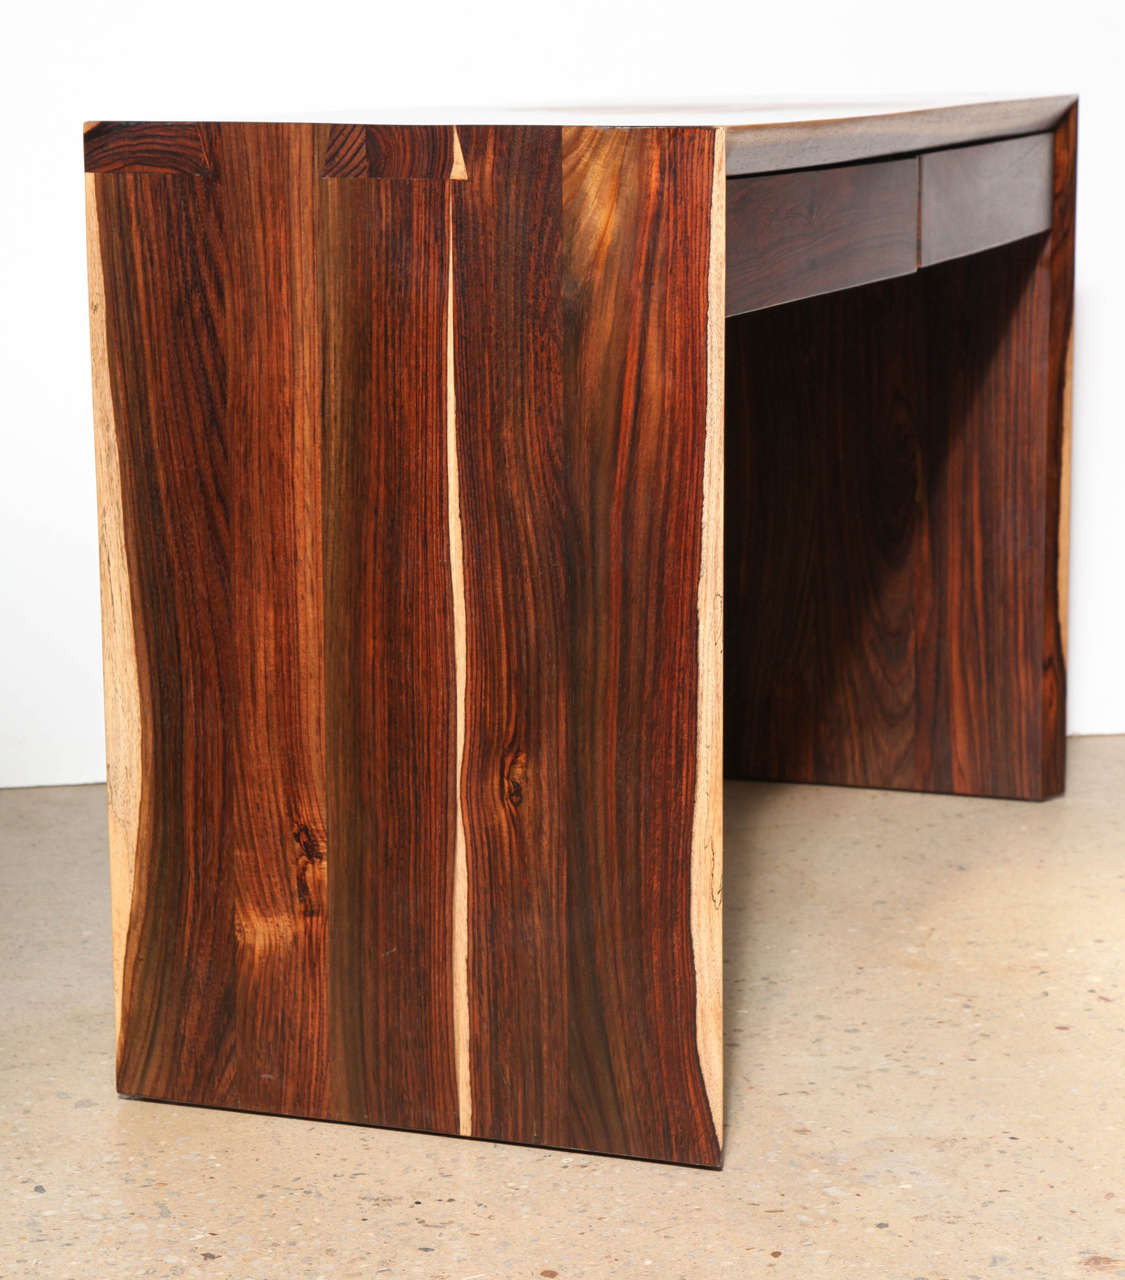 Craft Revival Hand Crafted Cocobolo Wood Desk For Sale 1